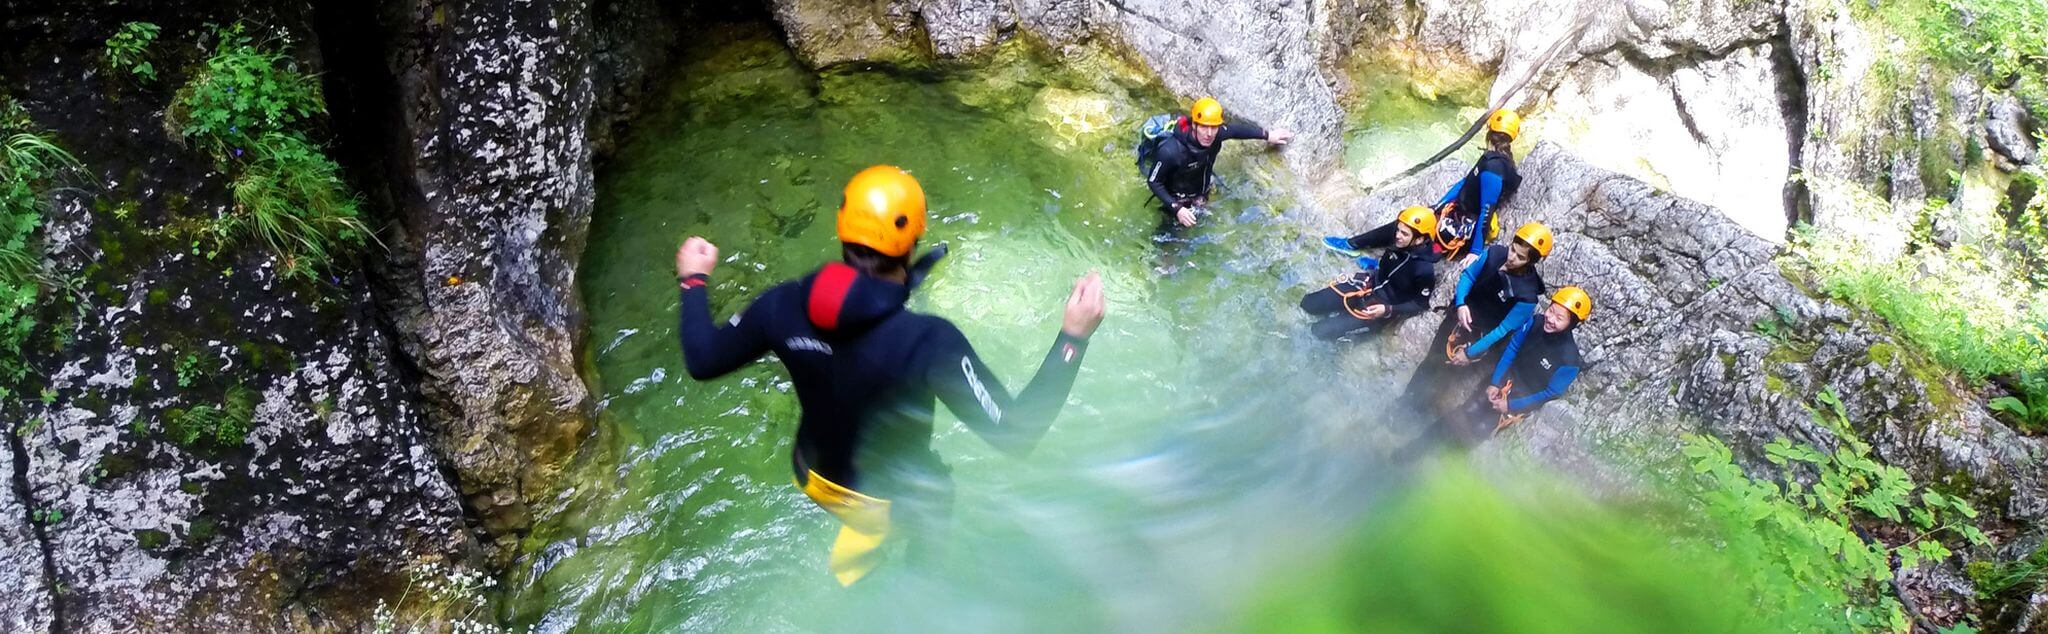 Canyoning in Valencia (City)